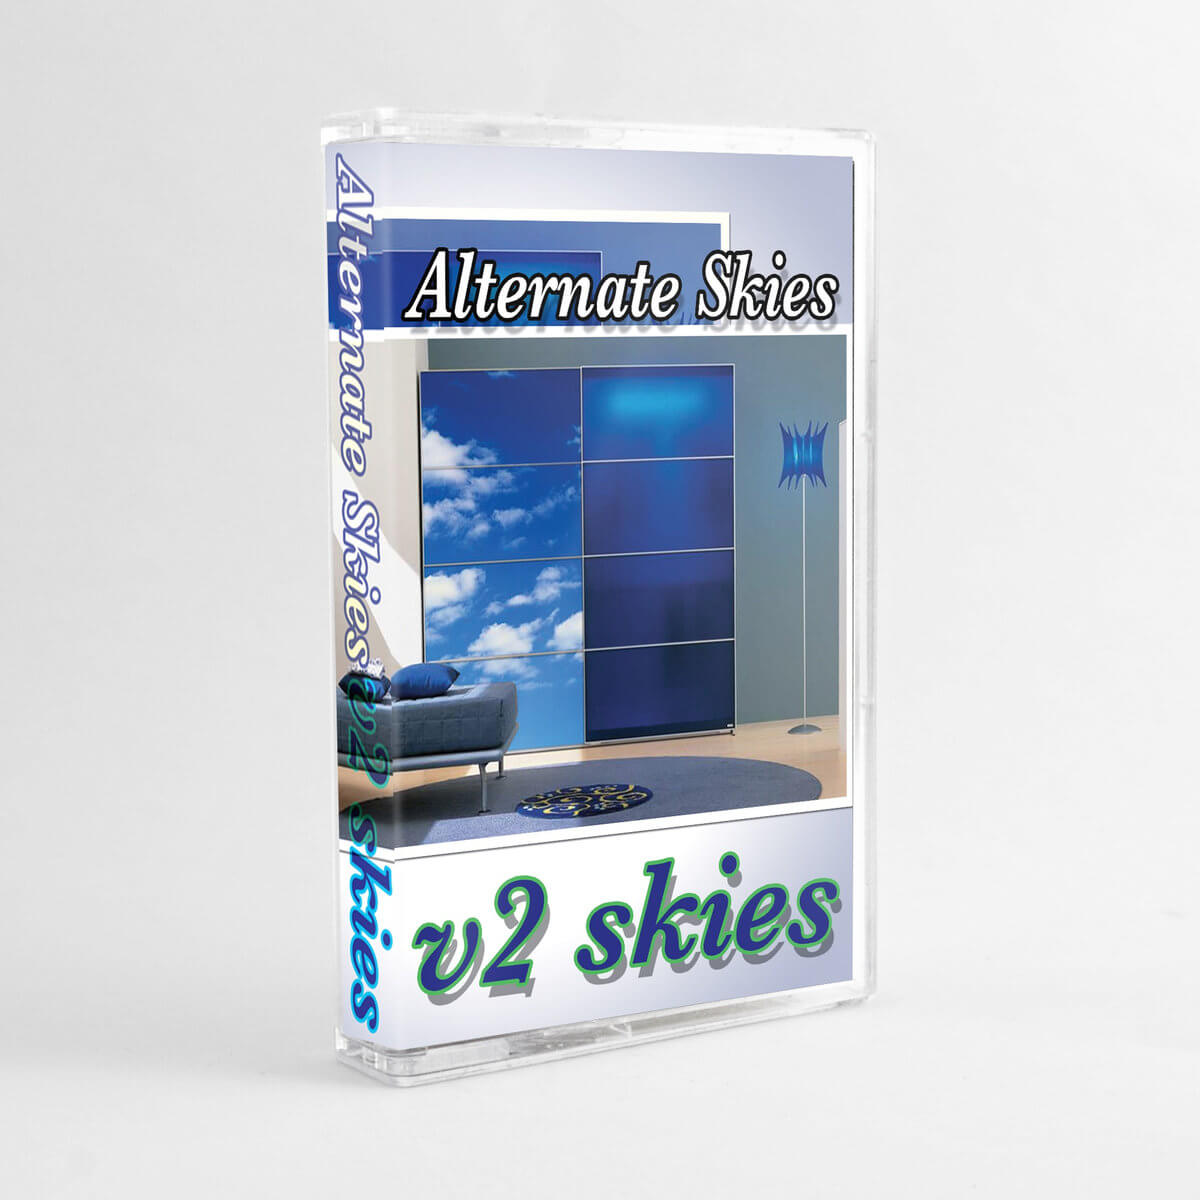 v2 skies by Alternate Skies